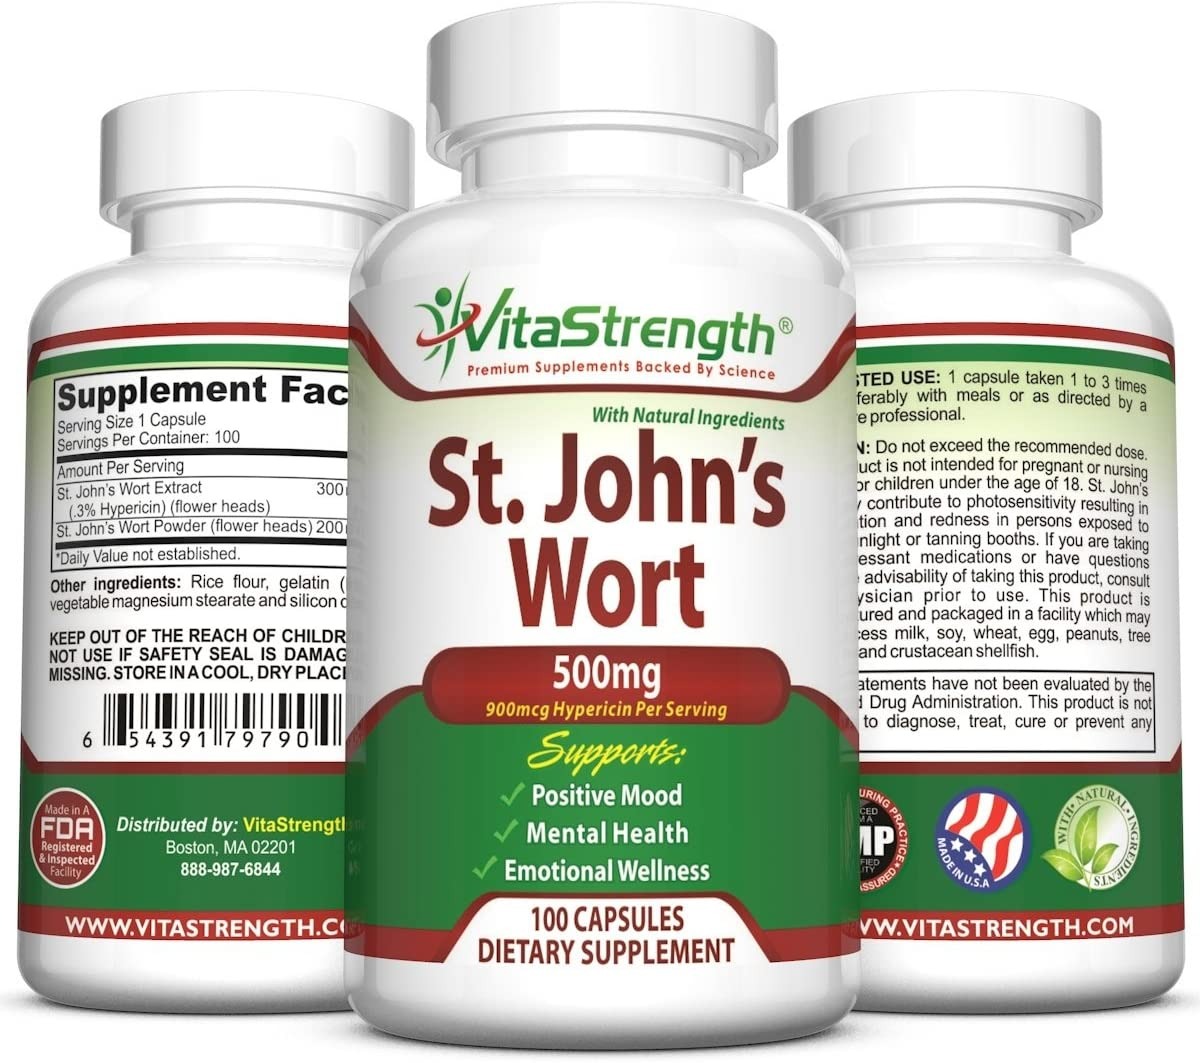 St. John s Wort – 500mg x 100 Capsules – Saint Johns Wort Extract for Mood Support – Promotes Mental Health Positive Emotional Wellness